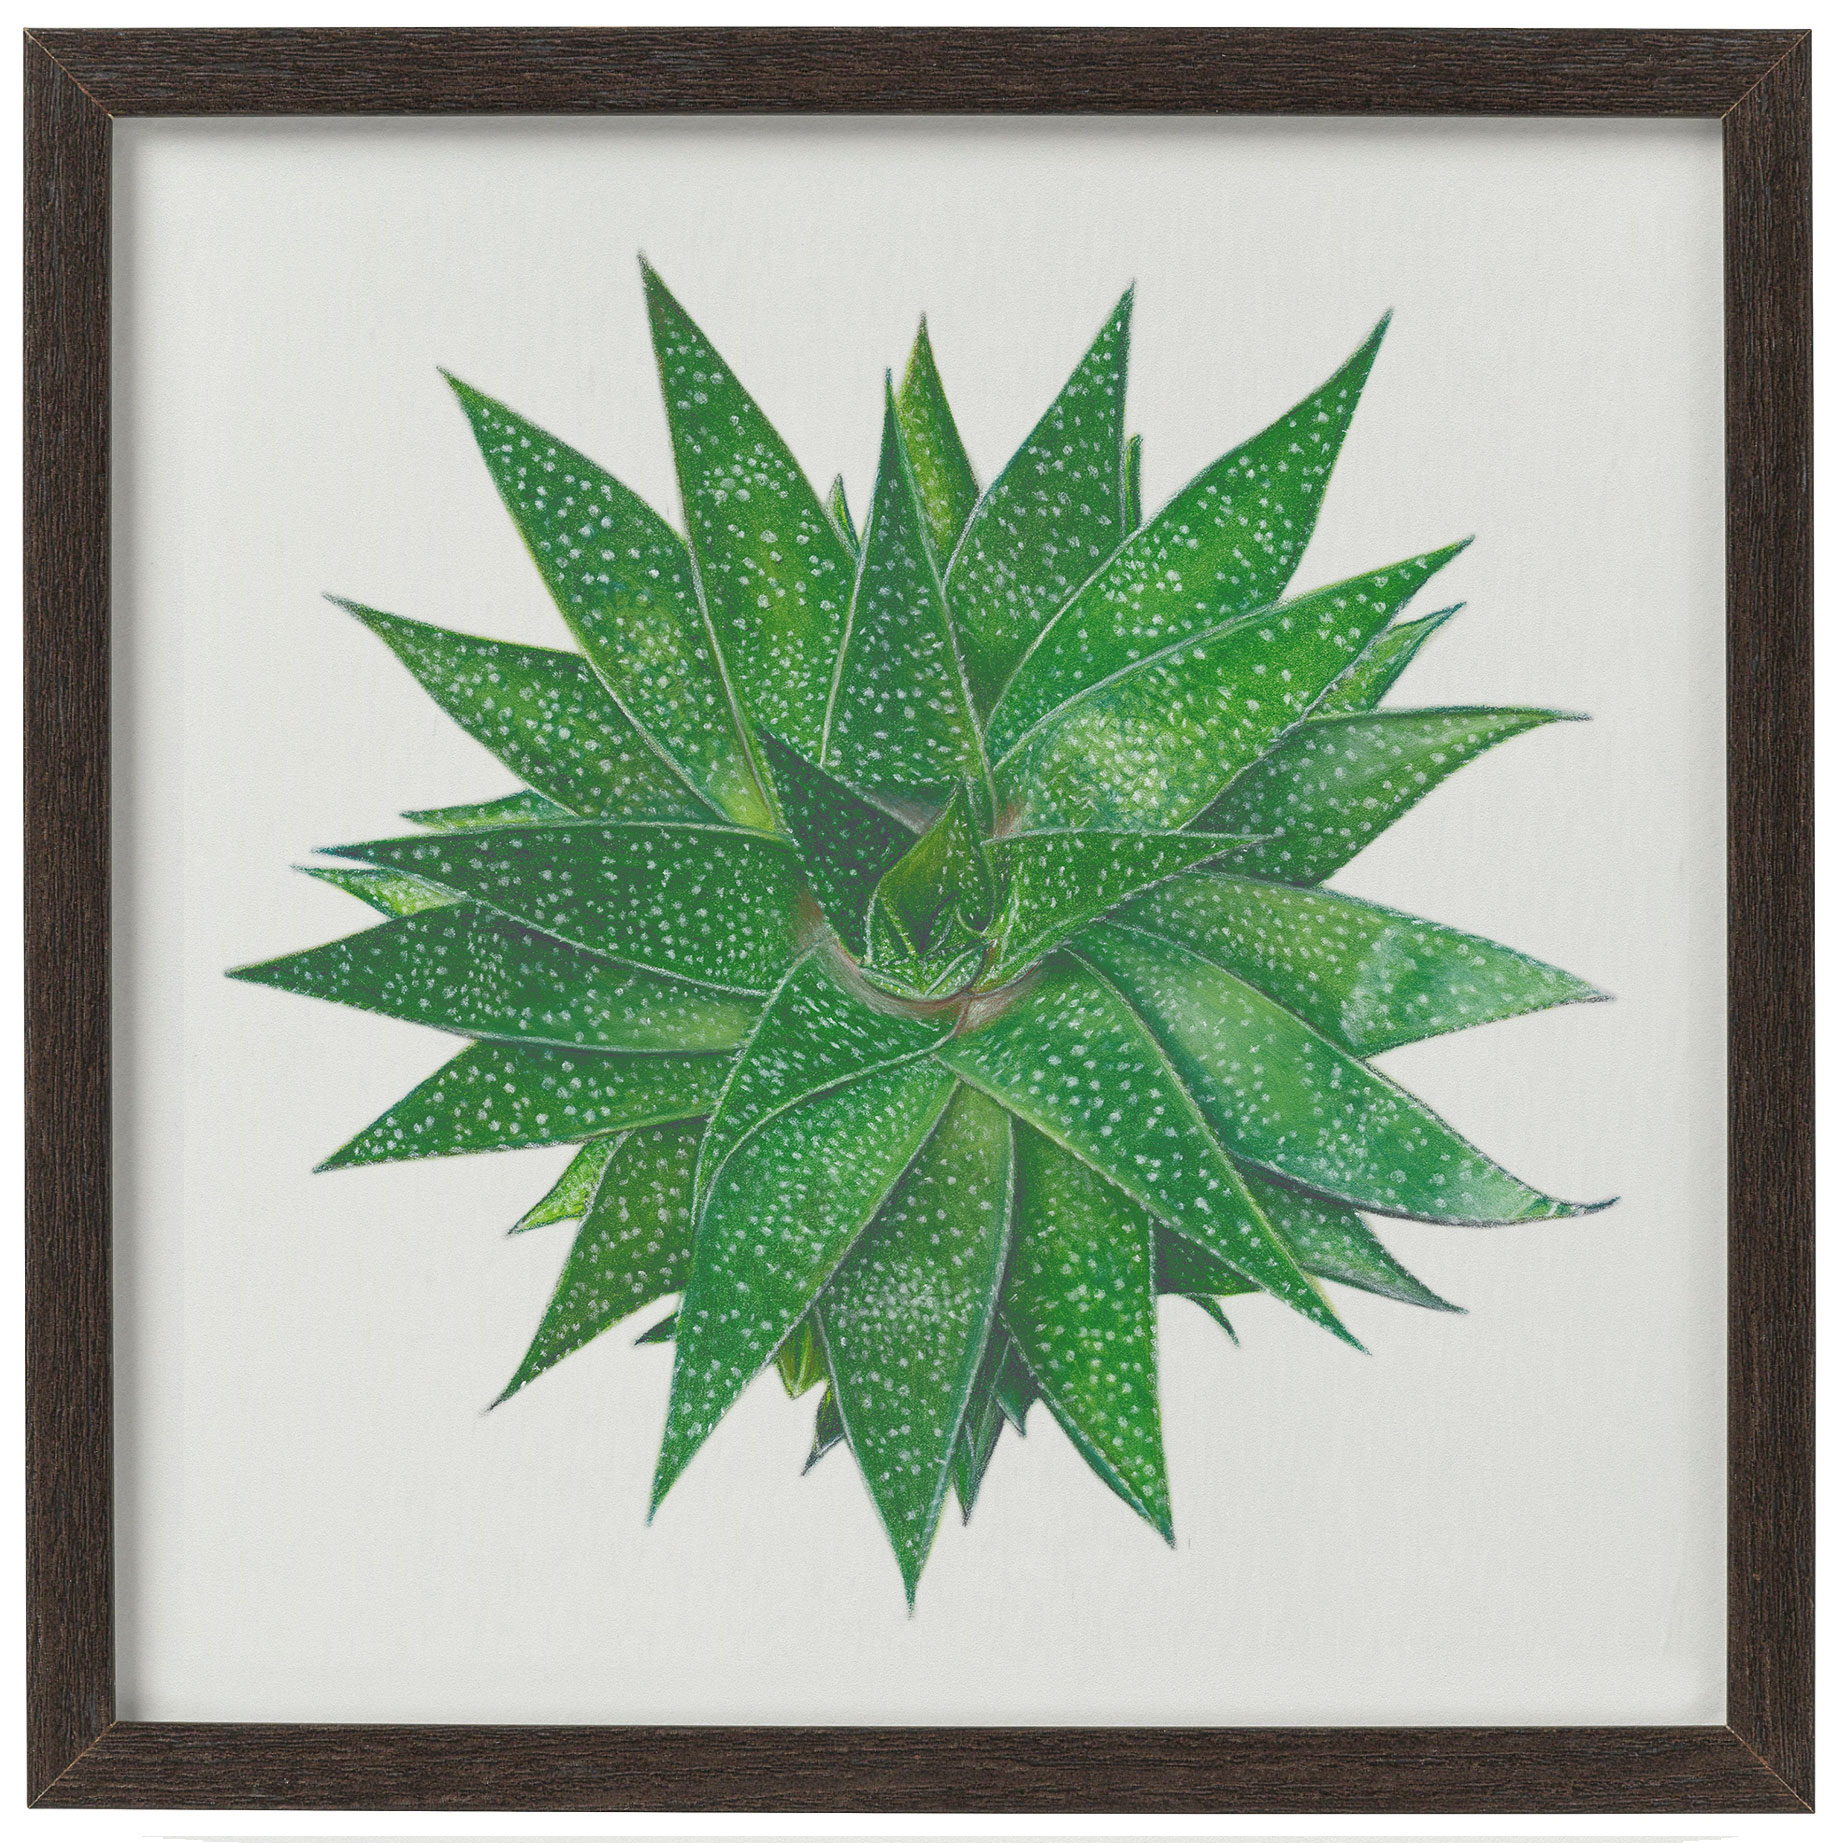 Gasteria - giclee print of a succulent